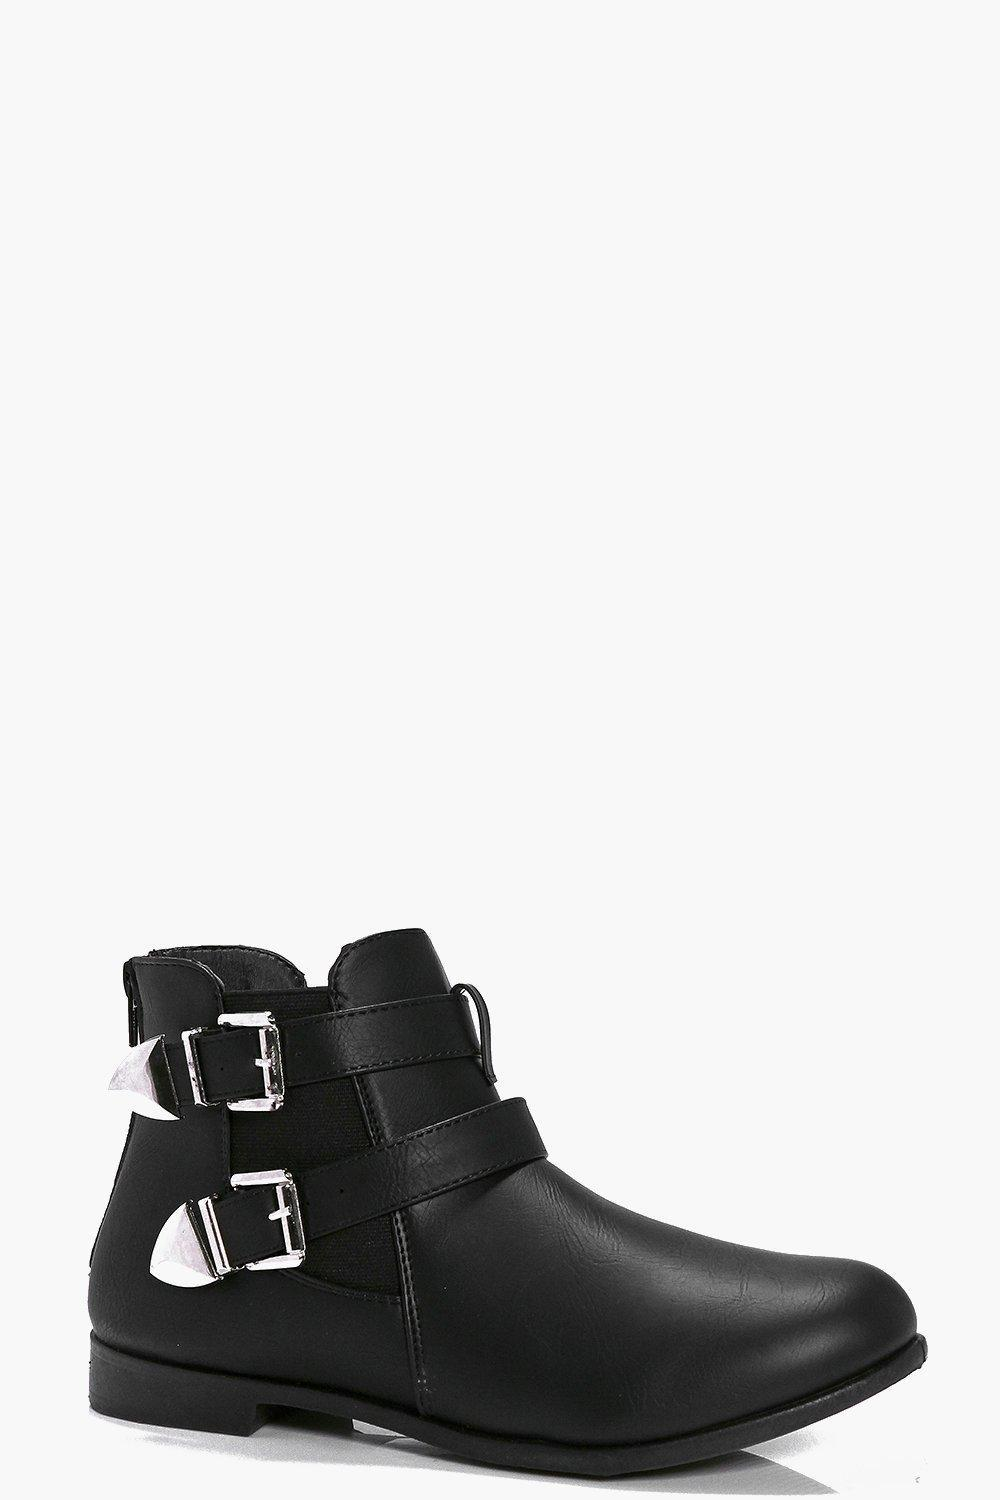 Buckle Chelsea Boot Black - predominant colour: black; occasions: casual; material: faux leather; heel height: flat; embellishment: buckles; heel: standard; toe: round toe; boot length: ankle boot; style: standard; finish: plain; pattern: plain; wardrobe: basic; season: a/w 2016